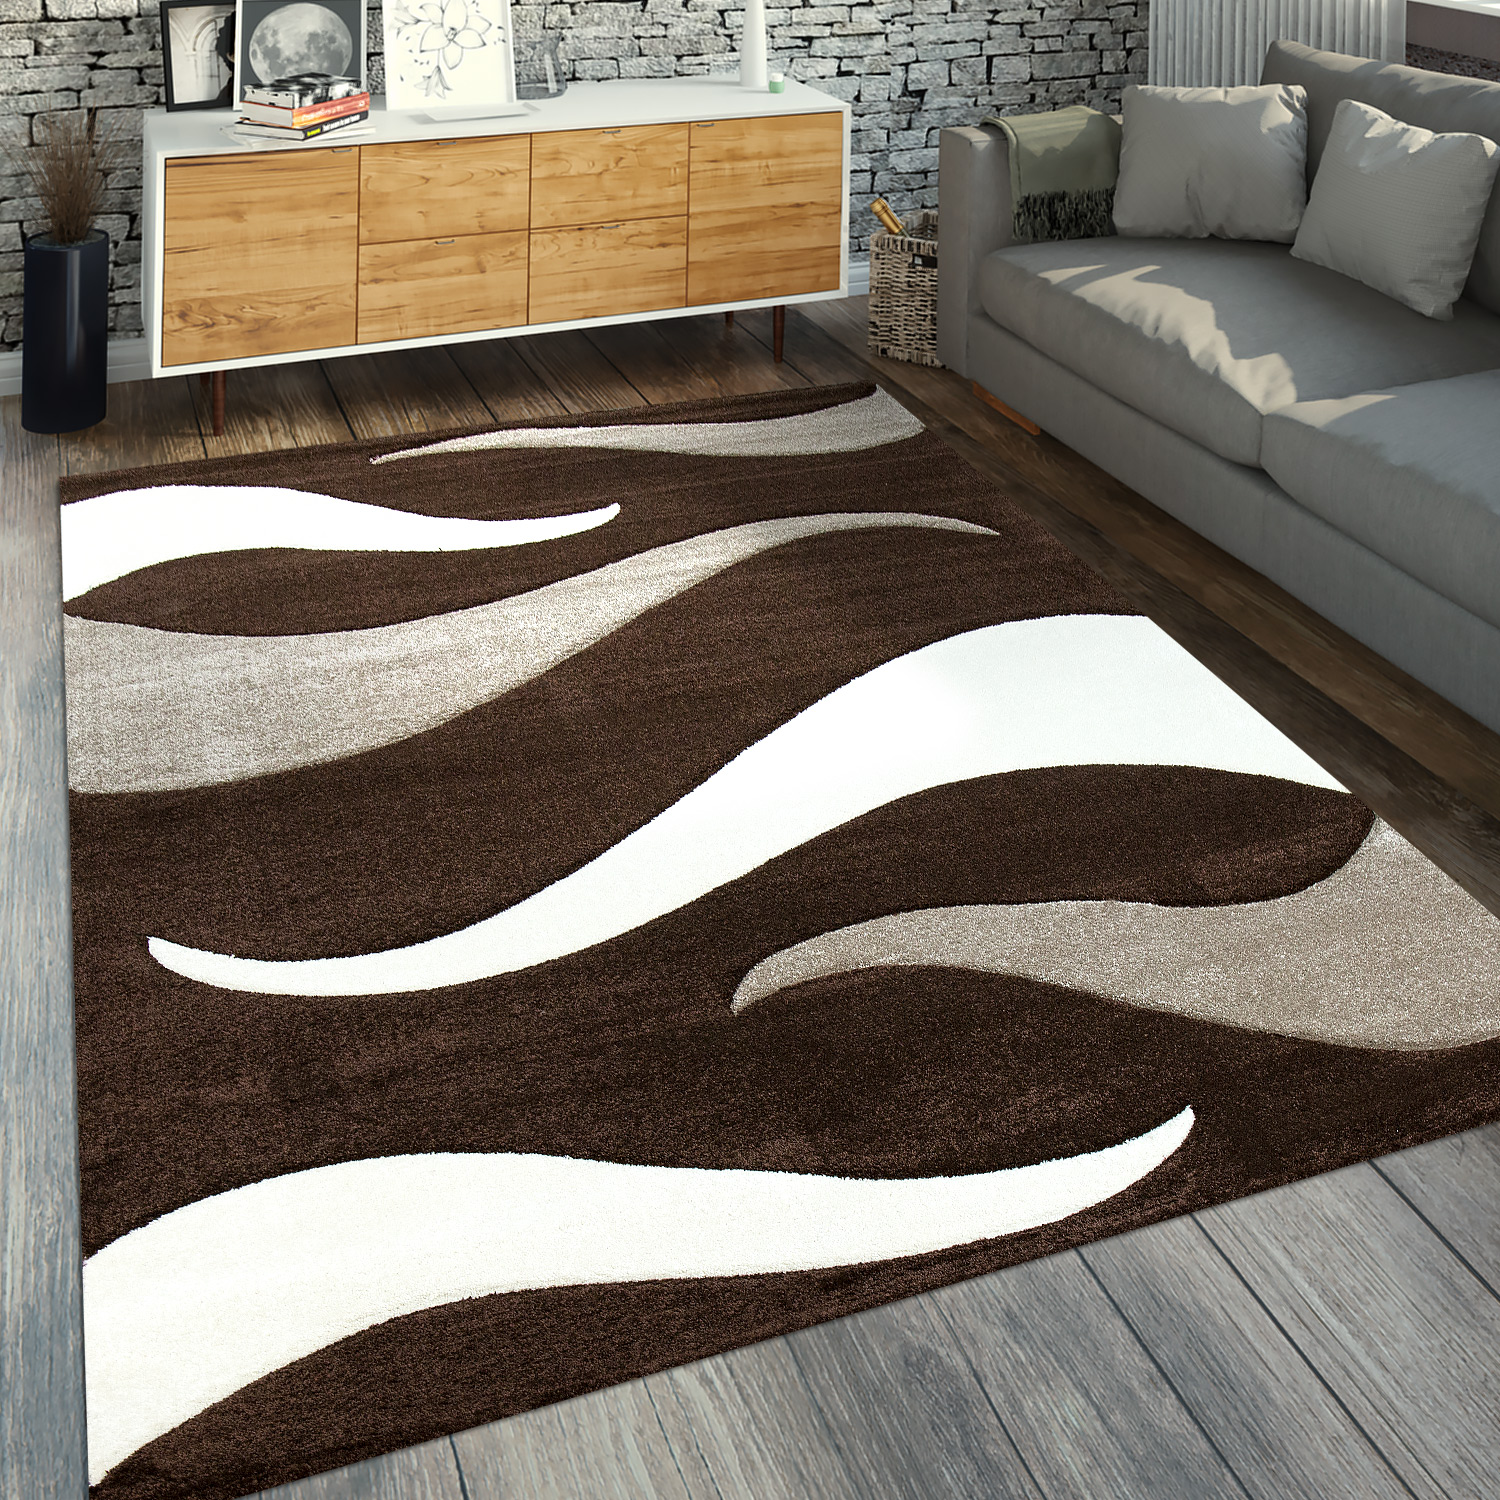 Designer Rug Wave Design Brown